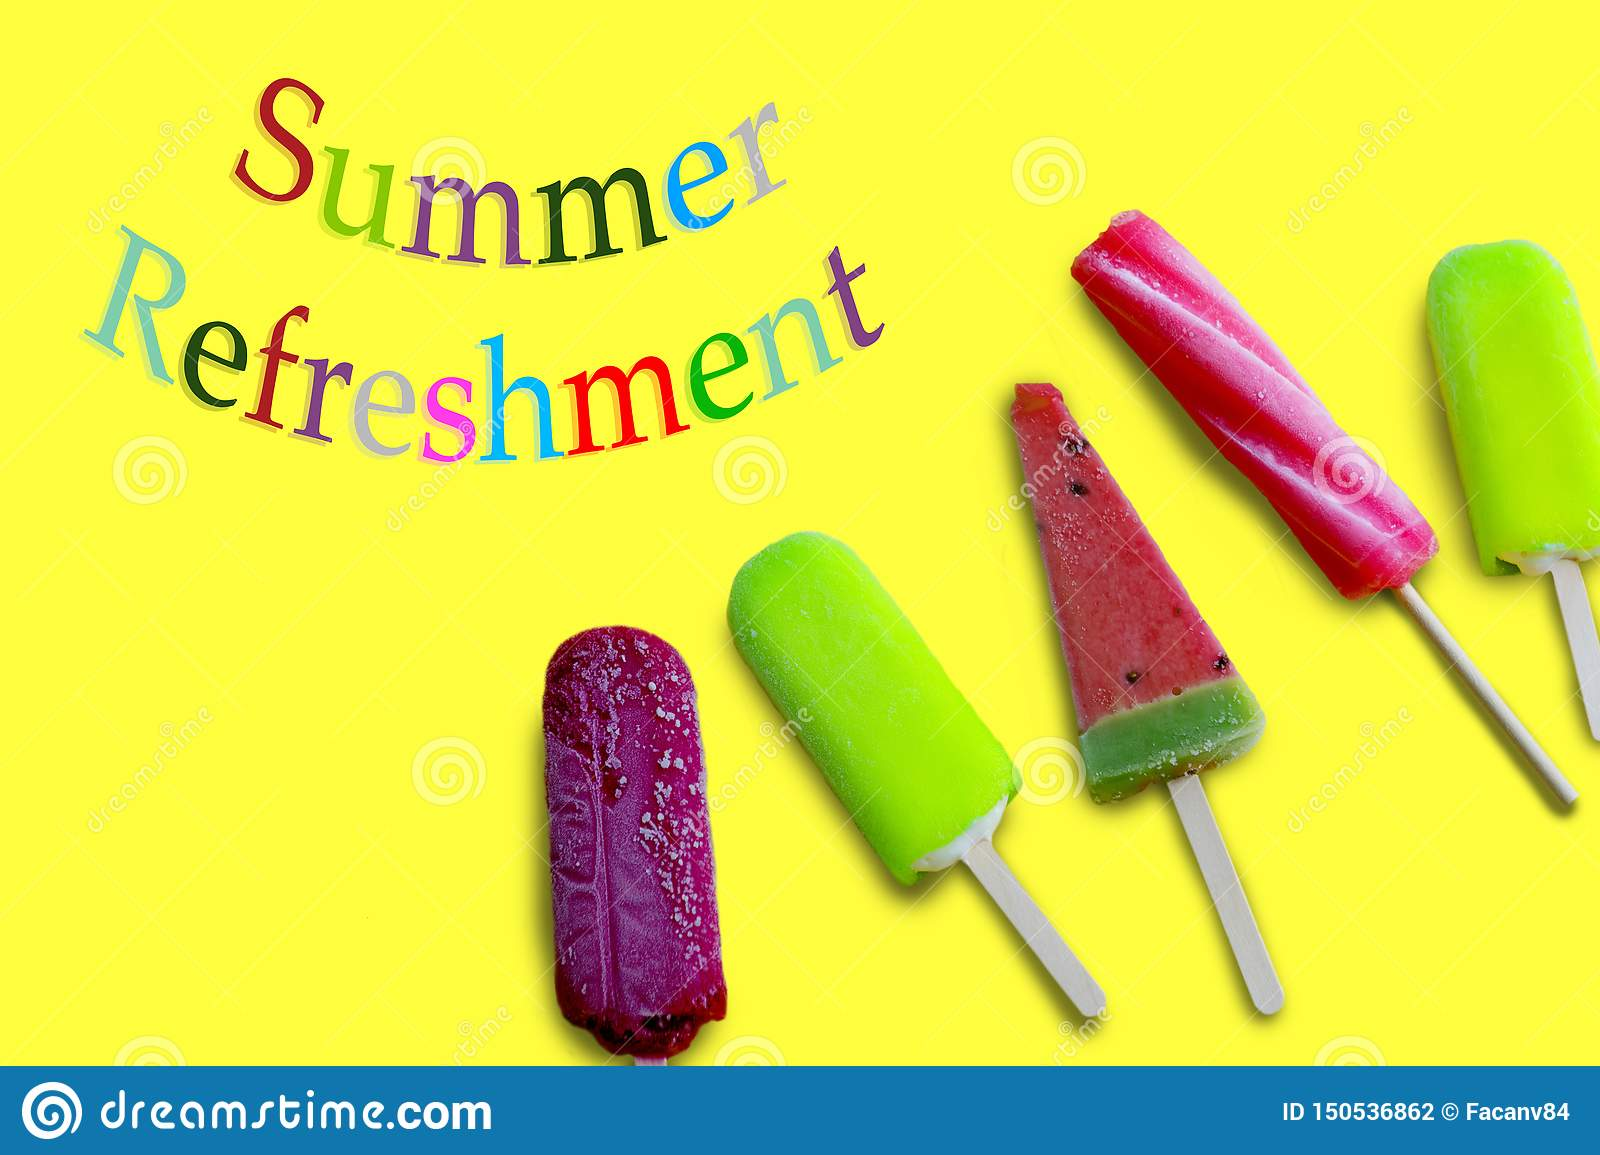 Summer refreshment with colorful letters and five ice cream on the yellow surface.